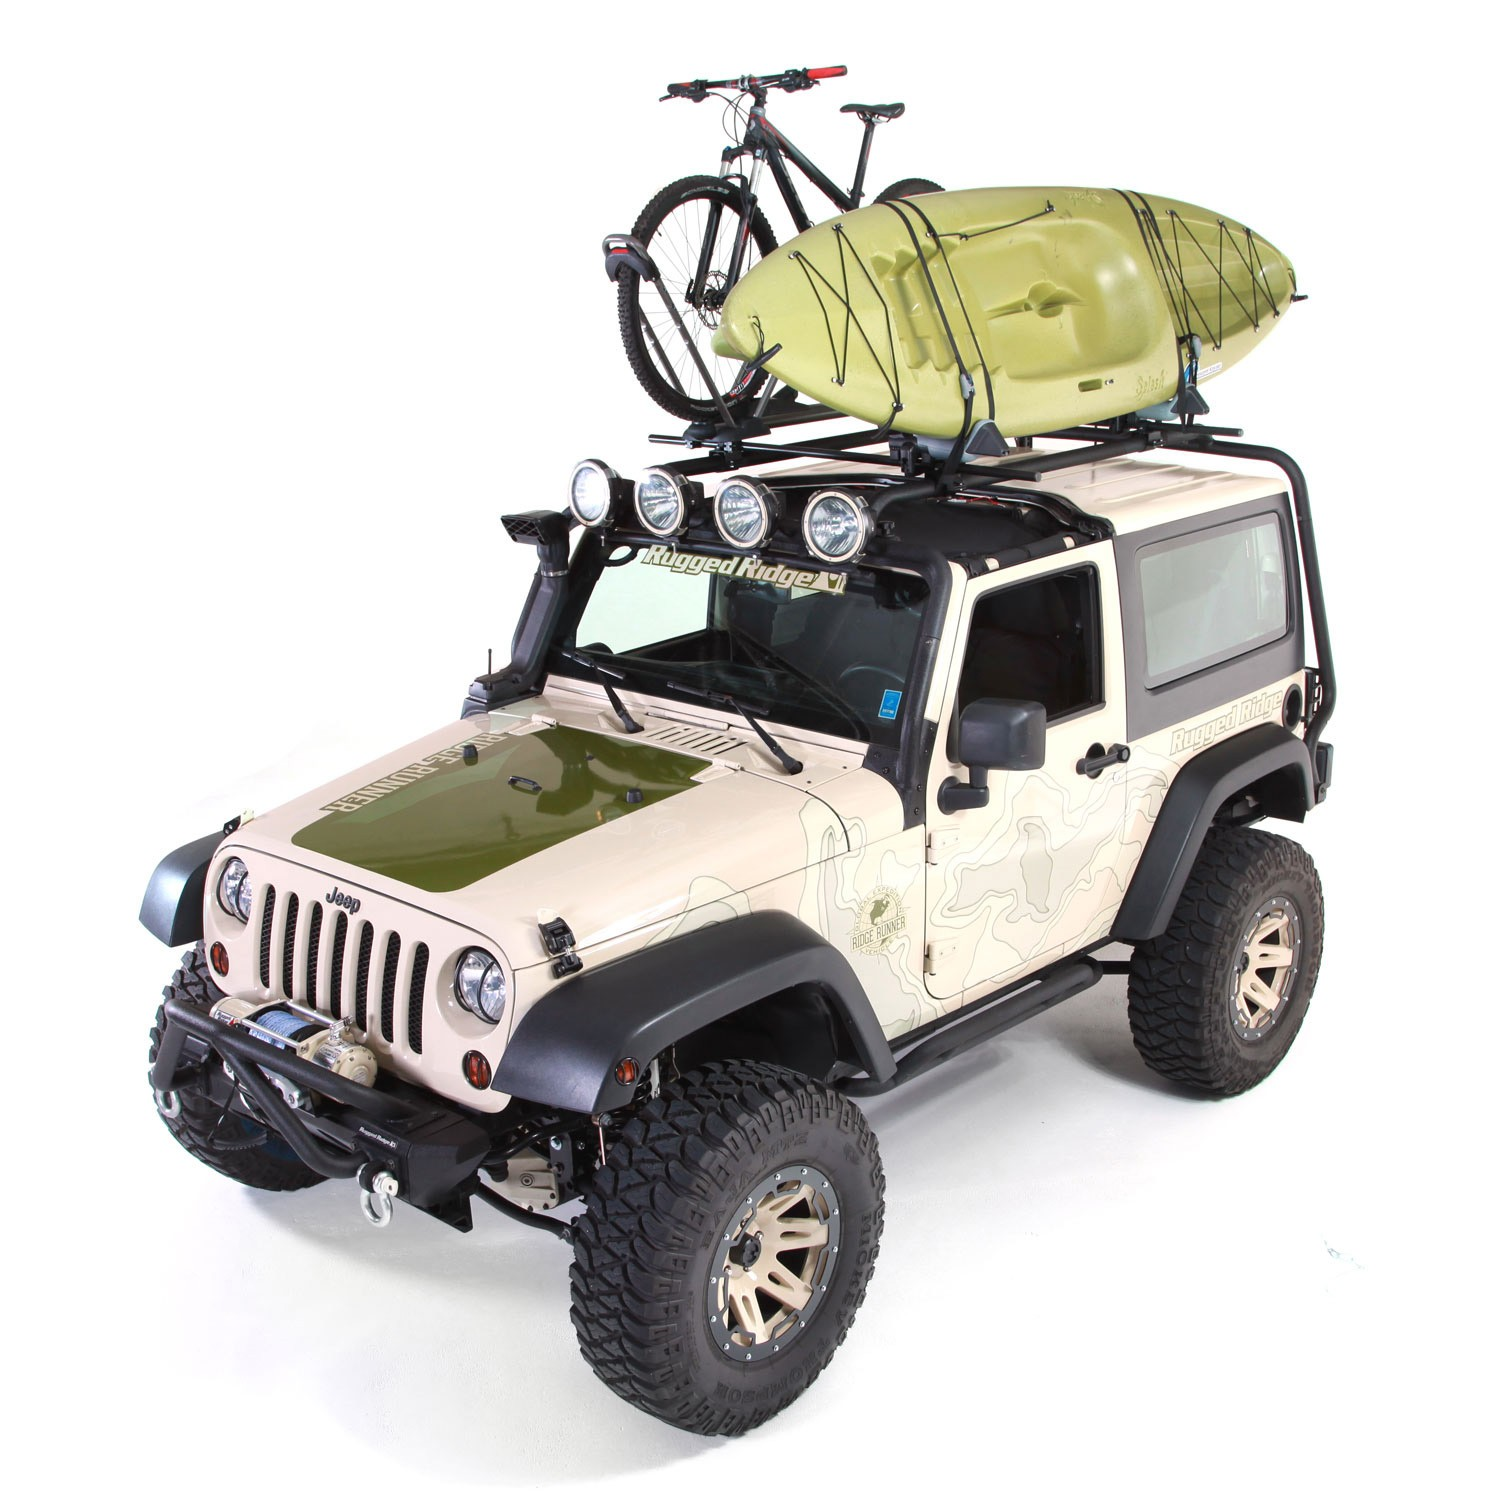 Sherpa Roof Rack Kit, 07-15 Wrangler, 2-Door